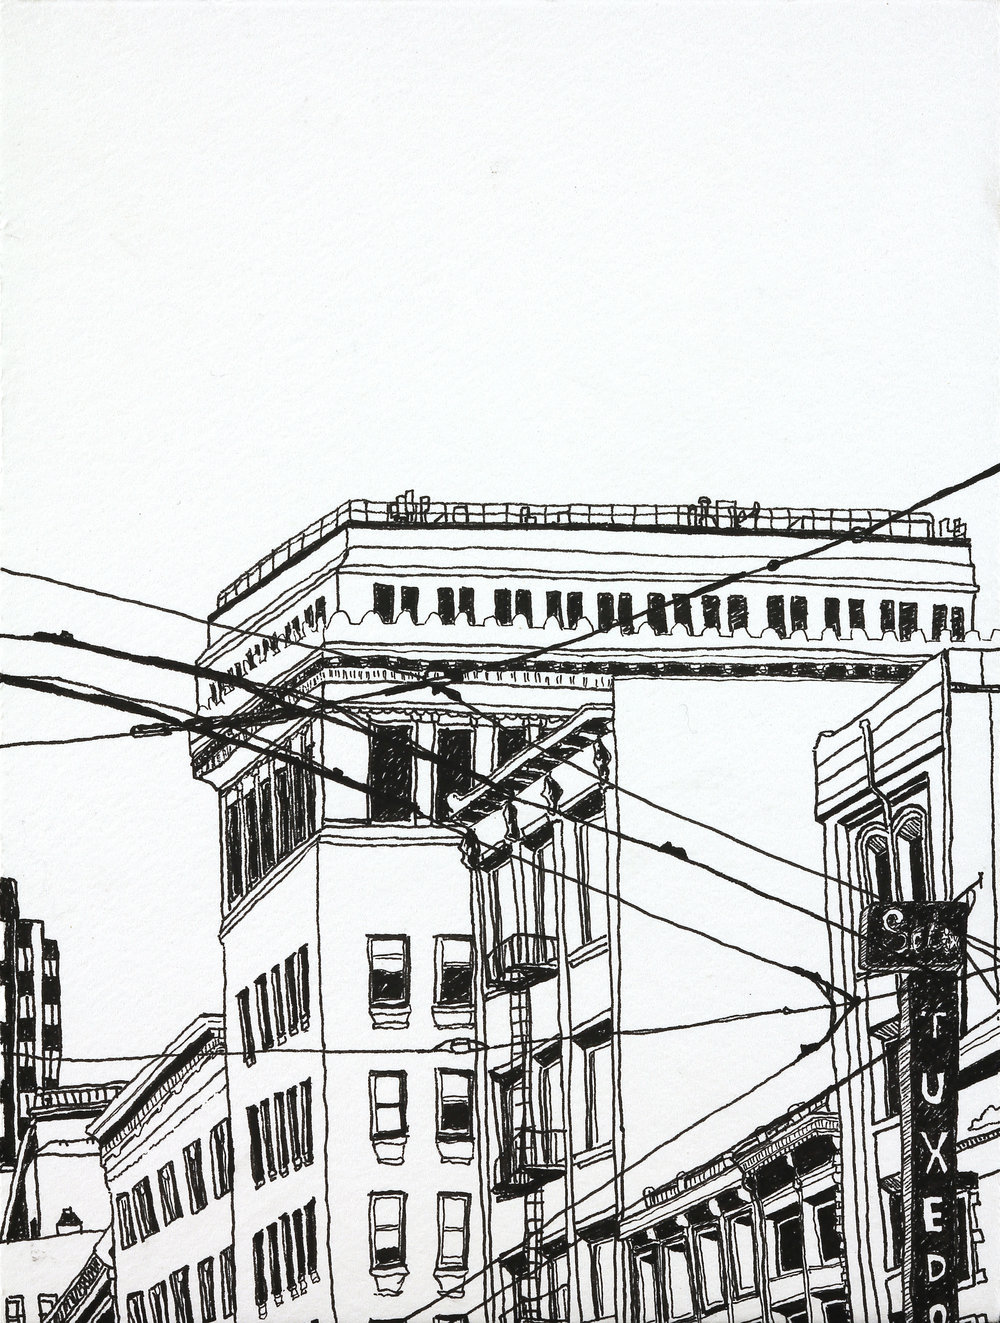 The_buildings_speak_their_history_8_x_6_inches_ink_on_paper.jpg